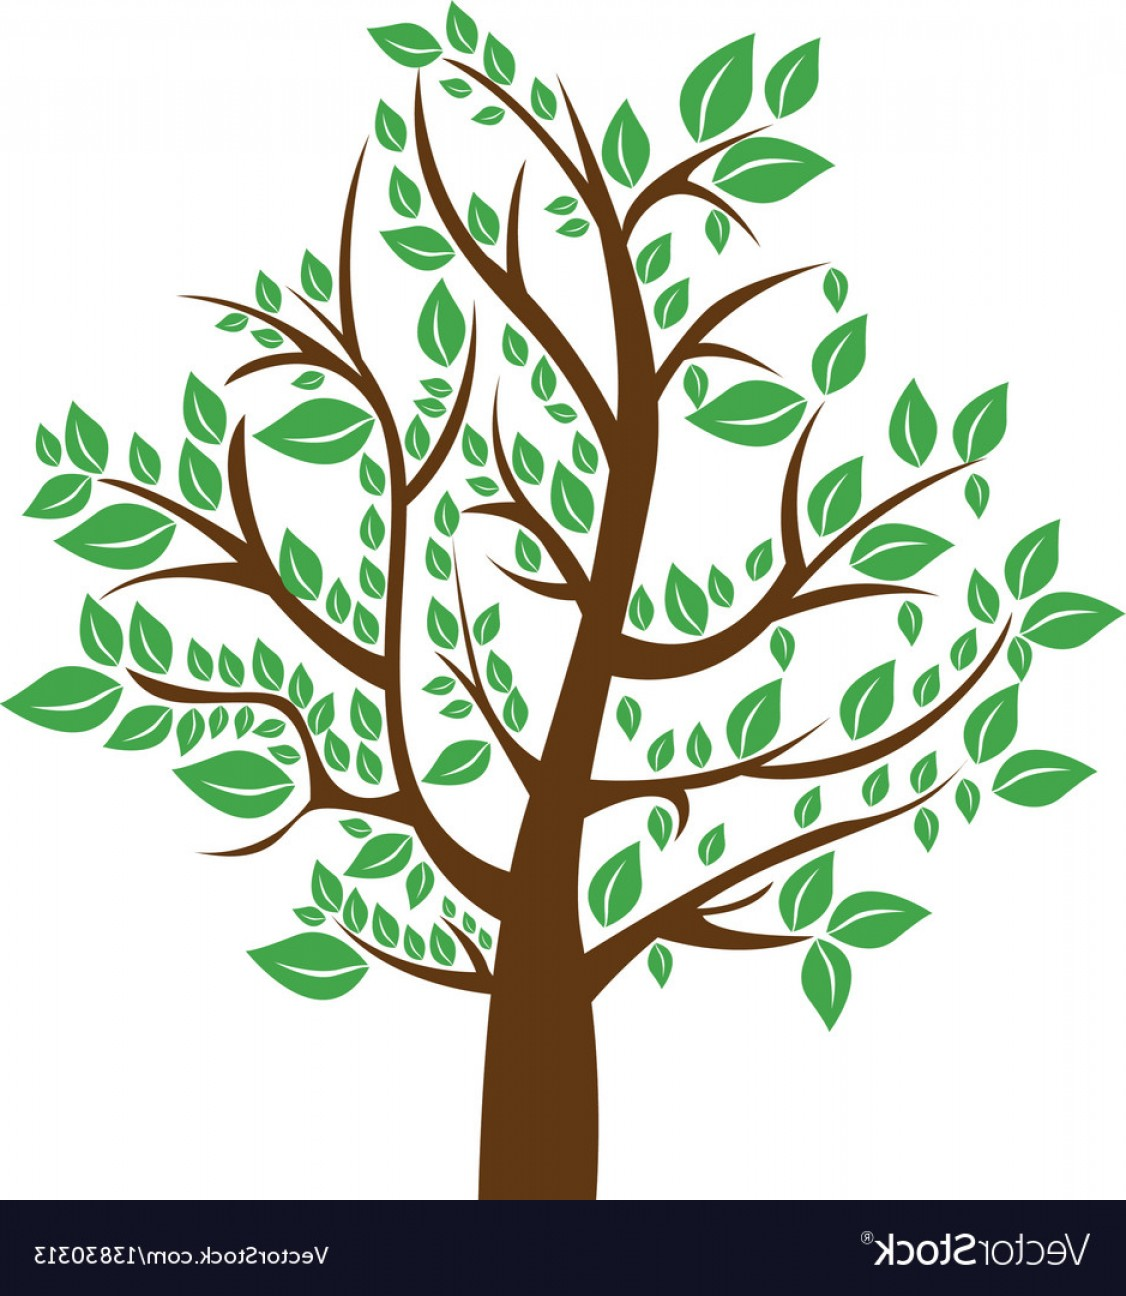 Tree Trunk Silhouette Vector: Silhouette Tree With Brown Trunk And Green Leaves Vector